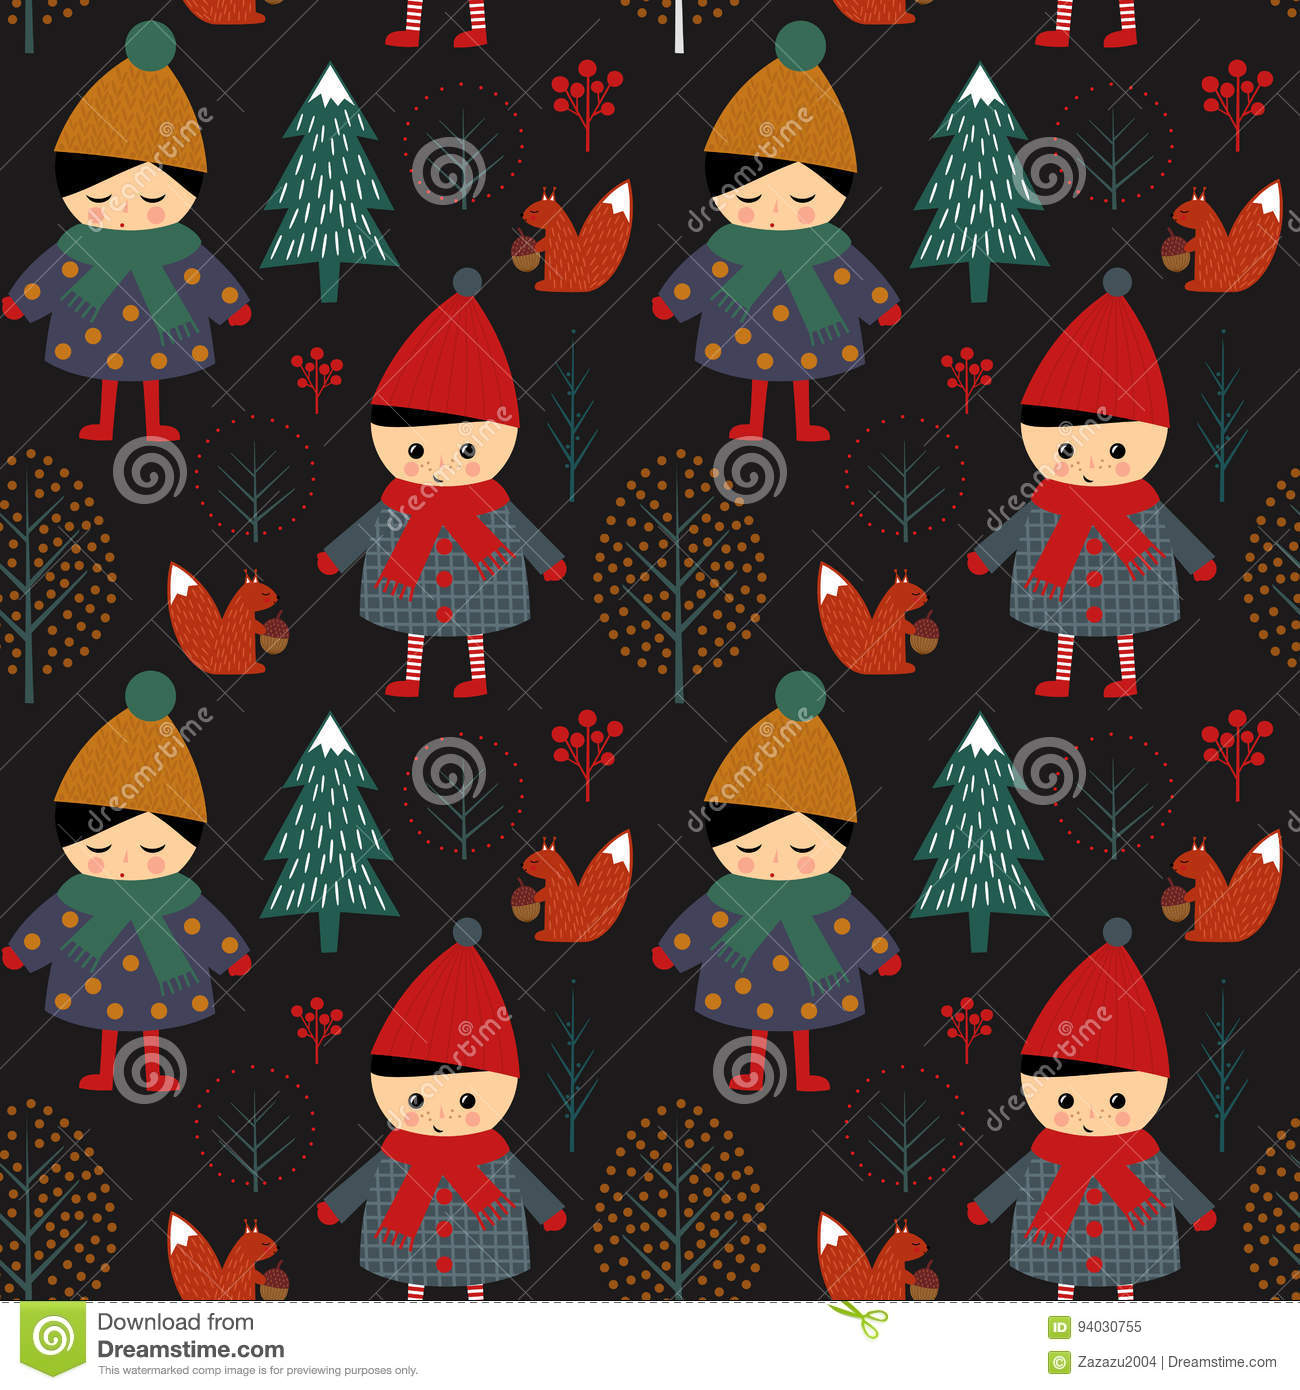 Cute boy and girl walking in winter forest seamless pattern on black background.